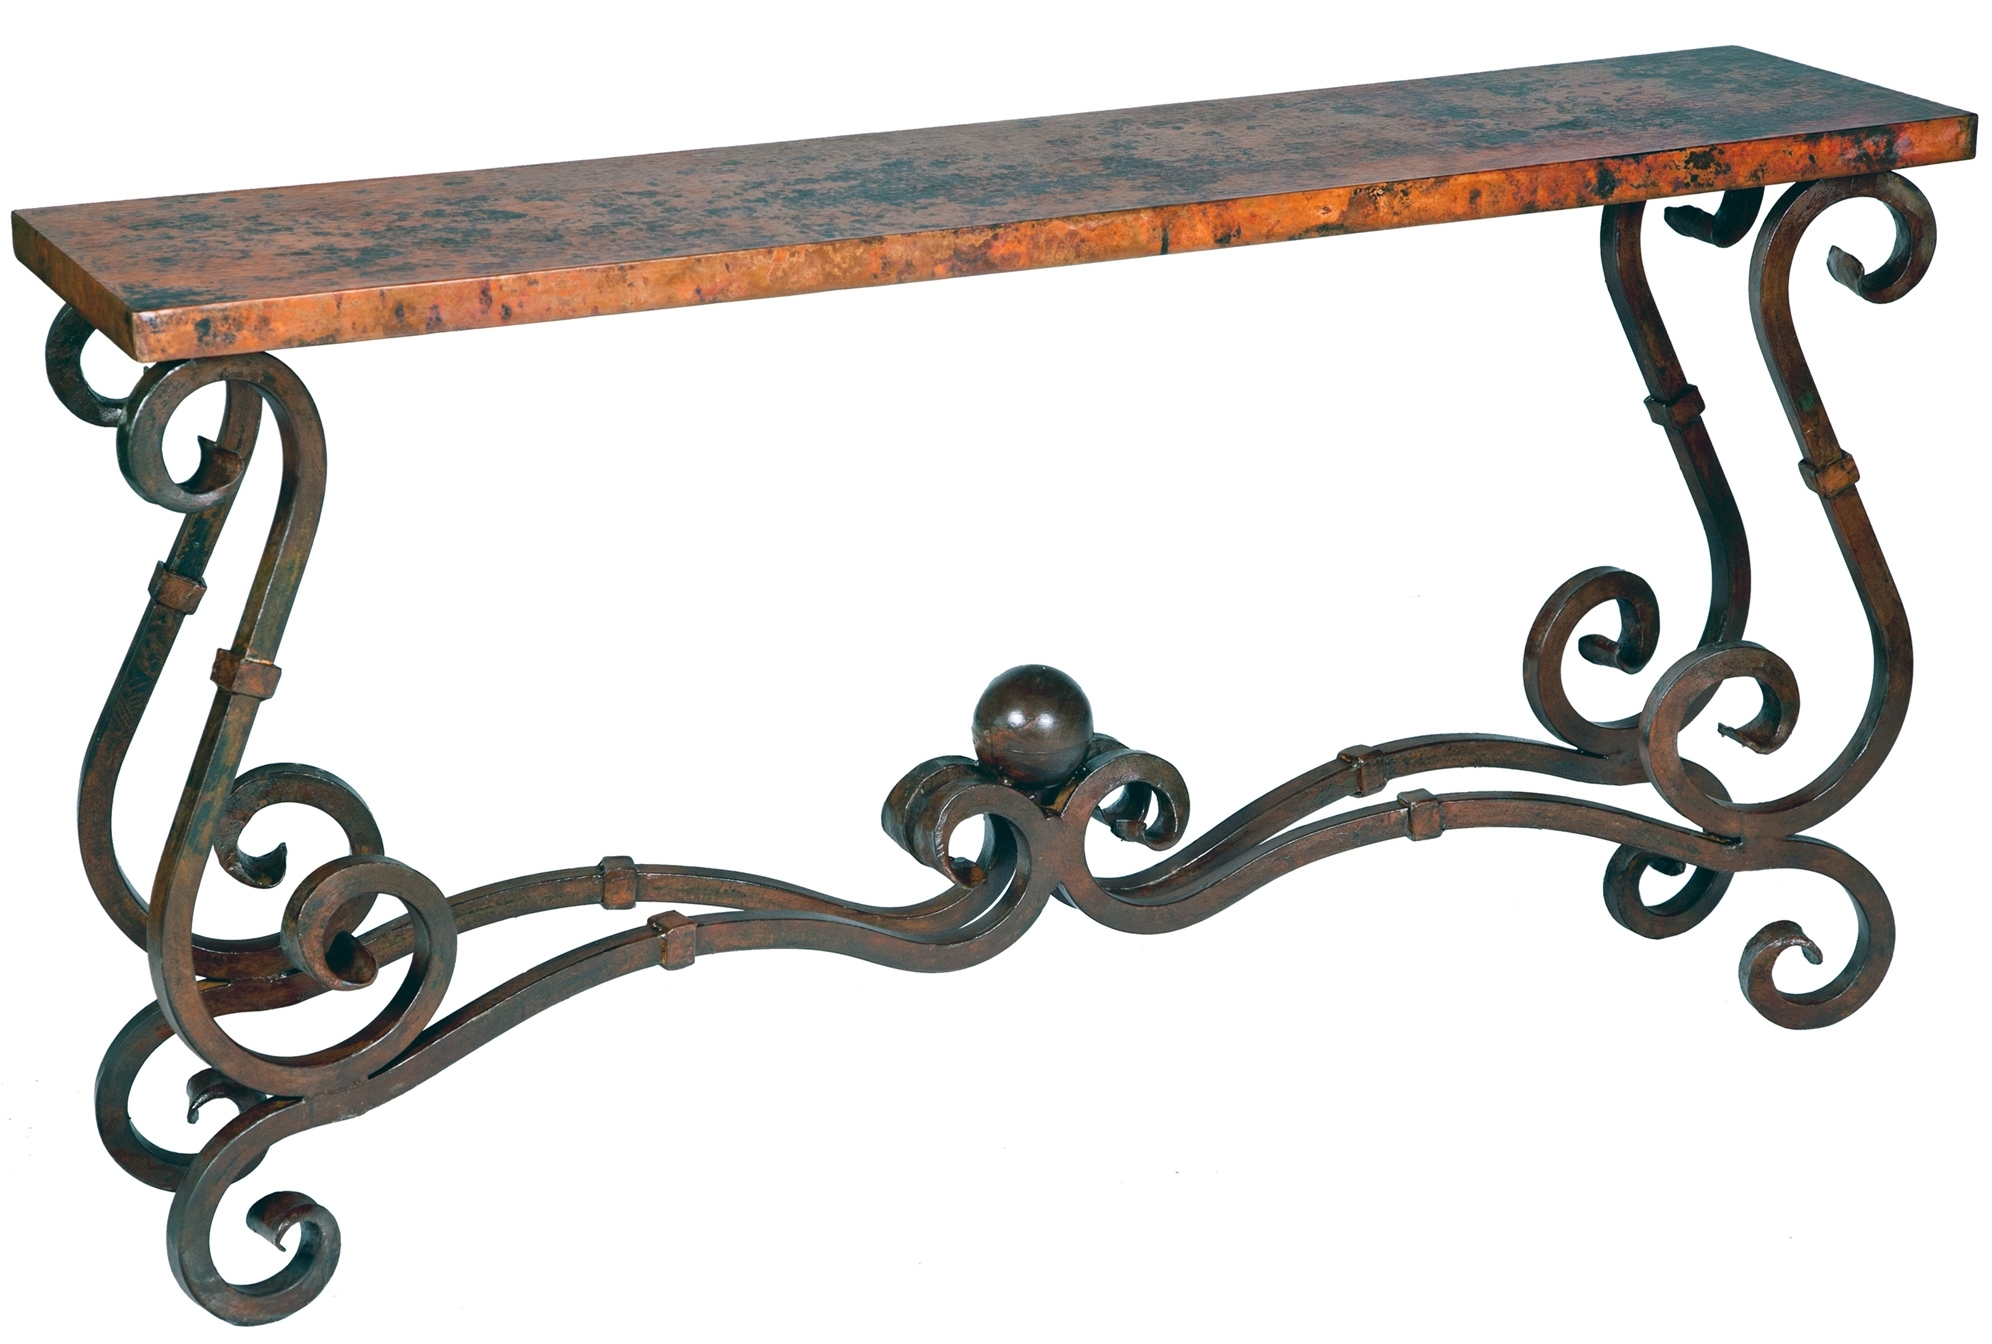 Stunning Copper amp Wrought Iron Furniture By Prima Artisan Crafted Furnishings And Decor Blog